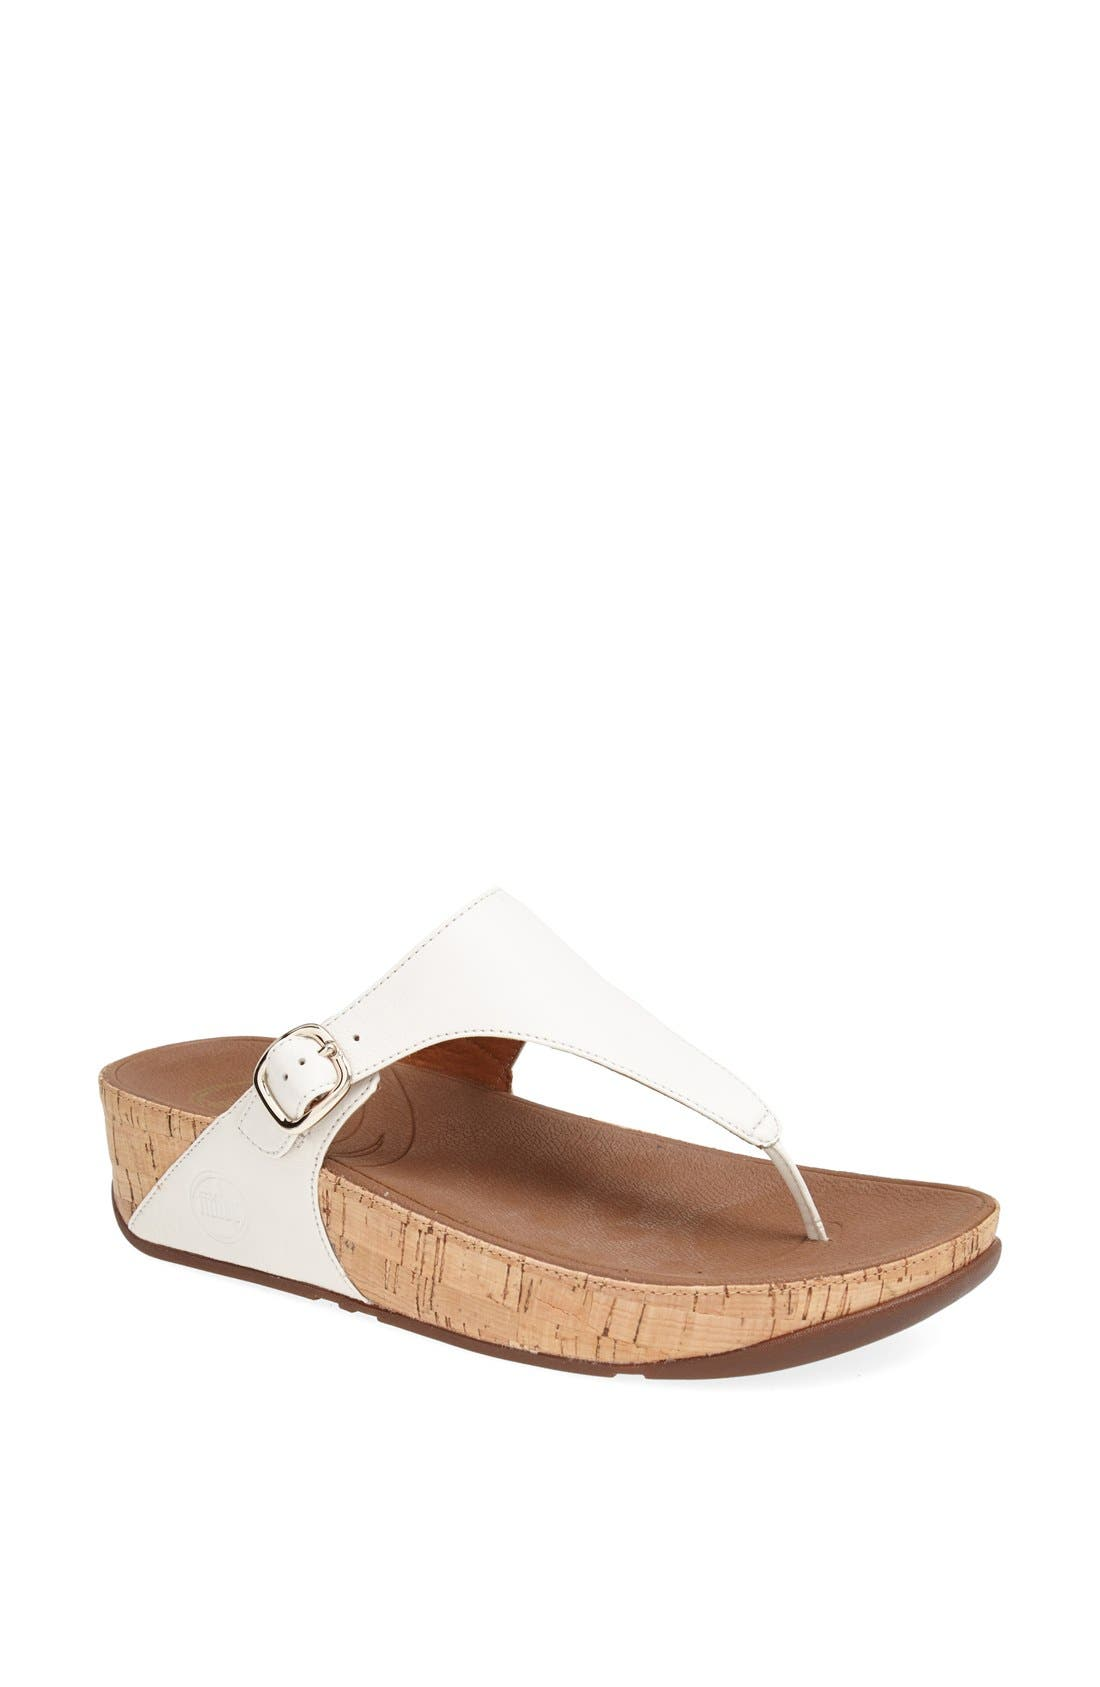 Main Image - FitFlop 'The Skinny™' Sandal